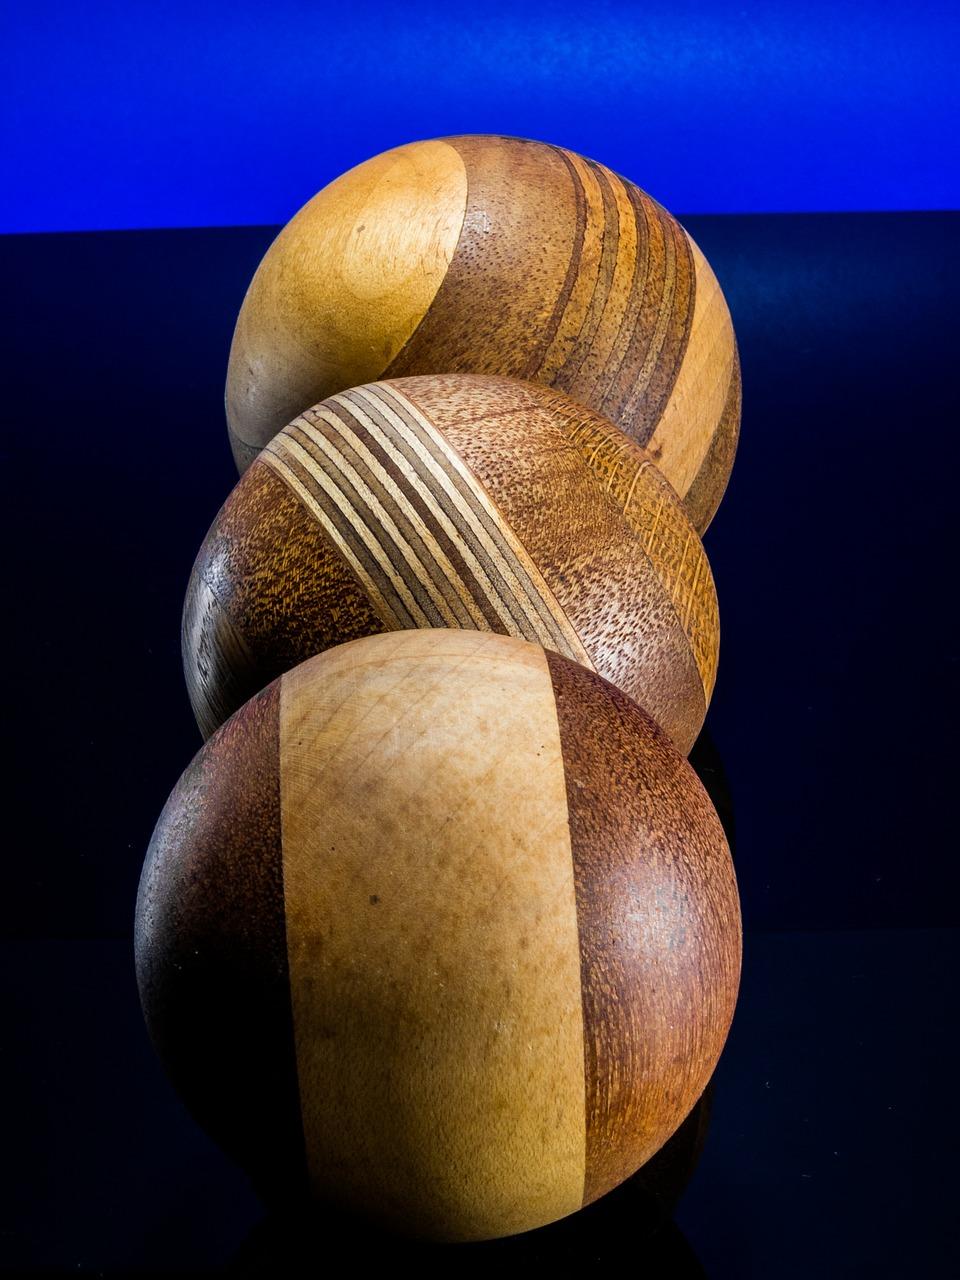 wooden ball,turned,hand labor,free pictures, free photos, free images, royalty free, free illustrations, public domain